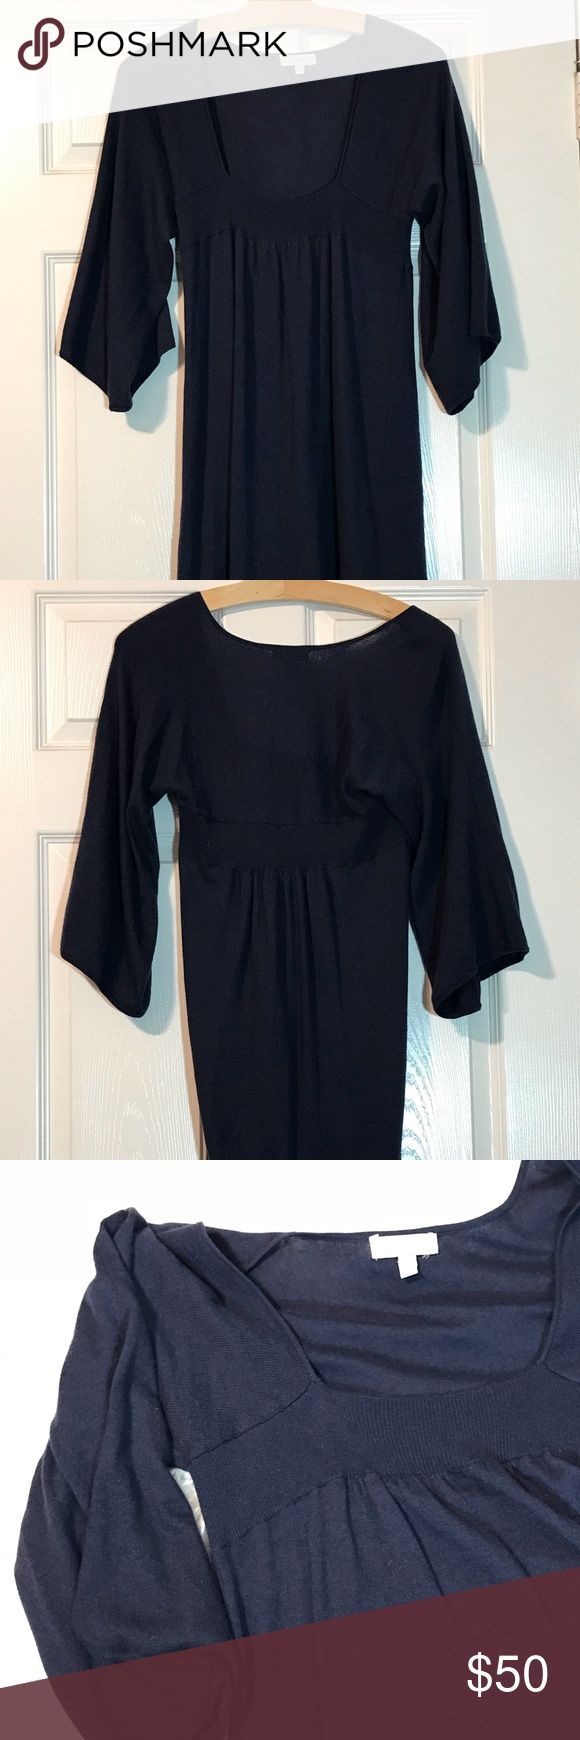 Joie Dark Blue Wool Cashmere Dress Size Large Joie  Blue Dress Size Large. Preowned. Wide 3/4 bell sleeves. Low U neckline and slightly Pleated at waist.   Length 36 inches  Size large Nylon / Rayon / Wool / Cashmere Dry clean Joie Dresses